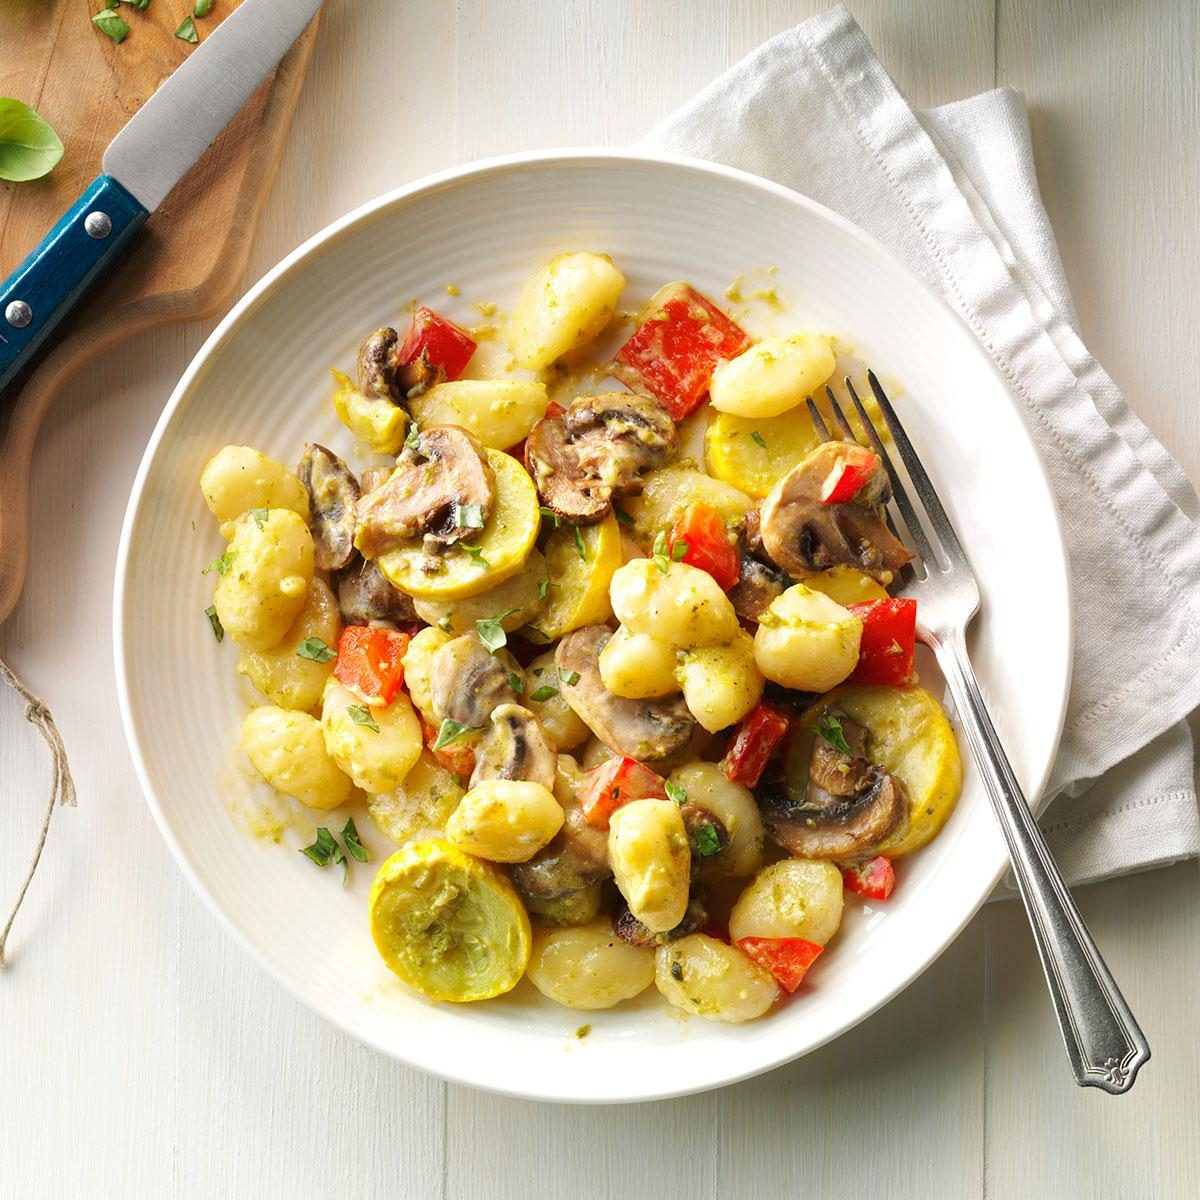 Garden Vegetable Gnocchi